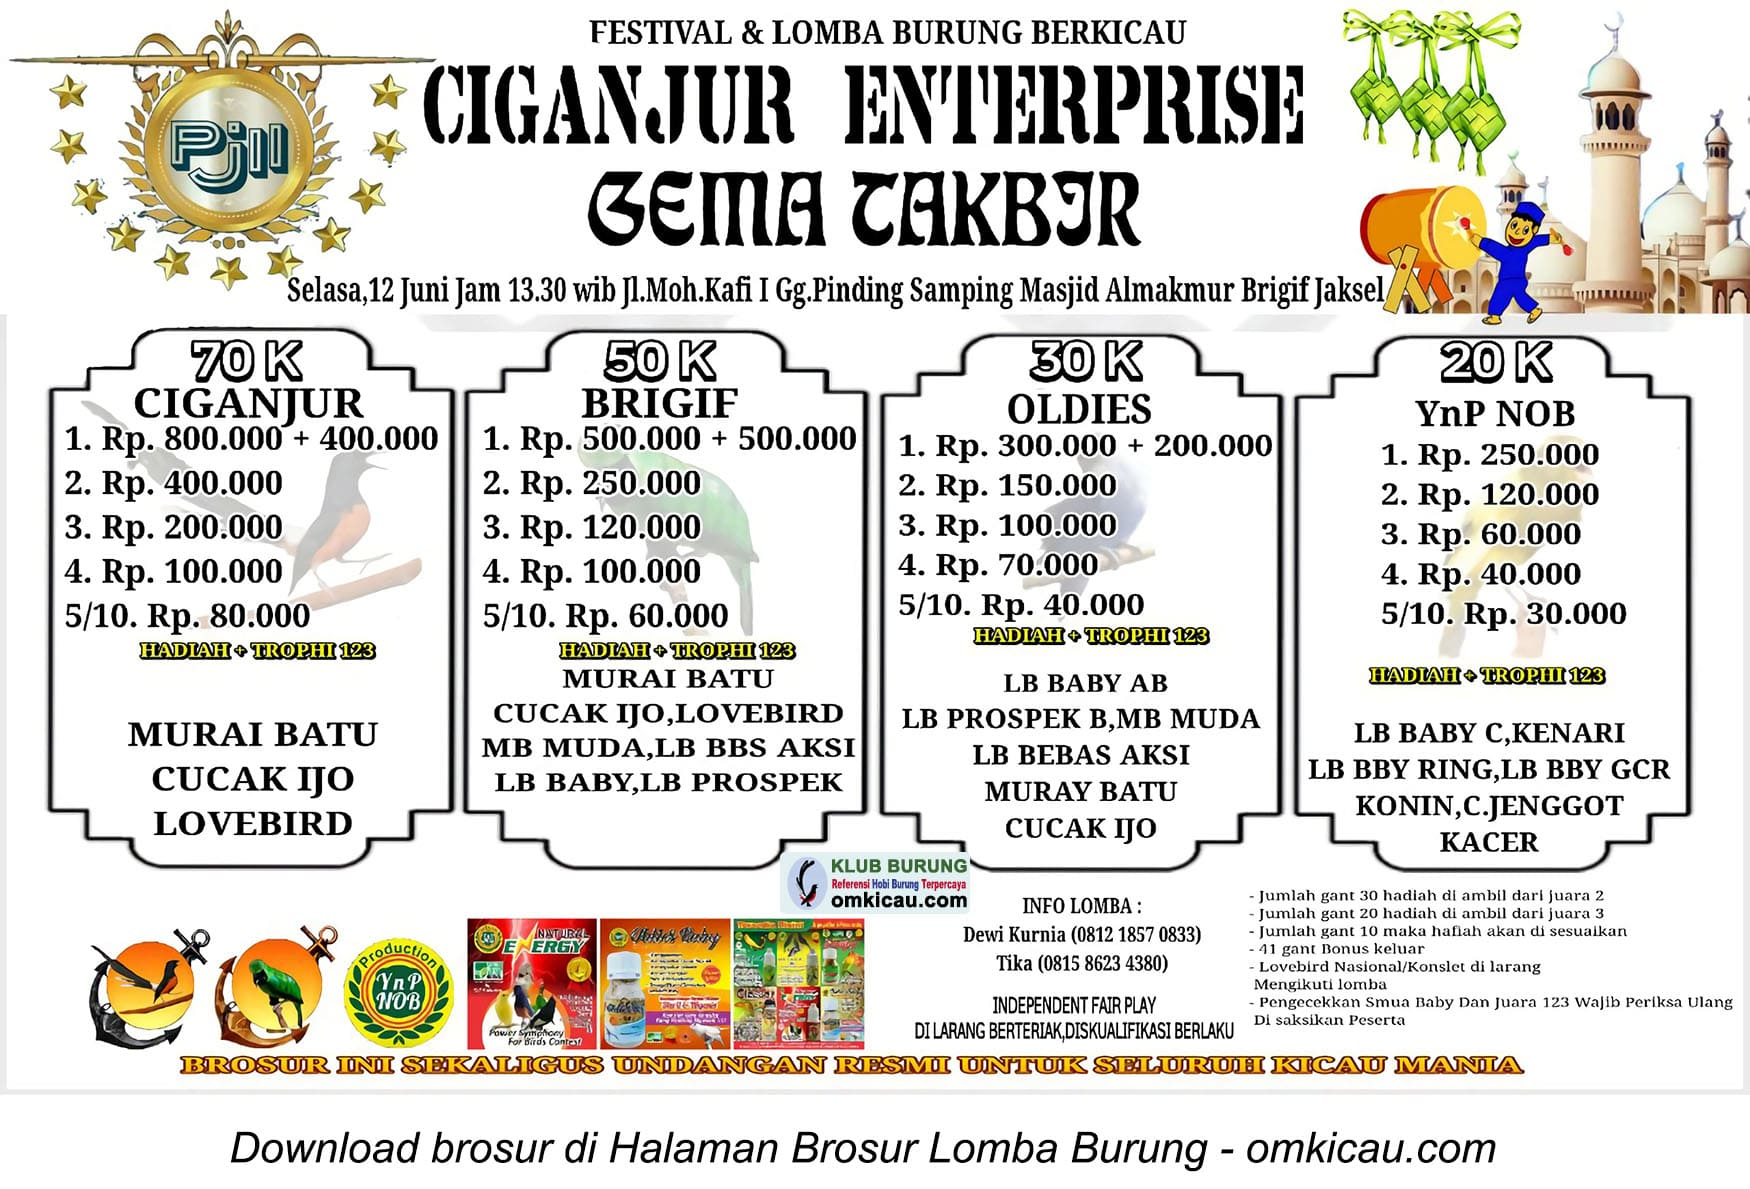 Gema Takbir Ciganjur Enterprise